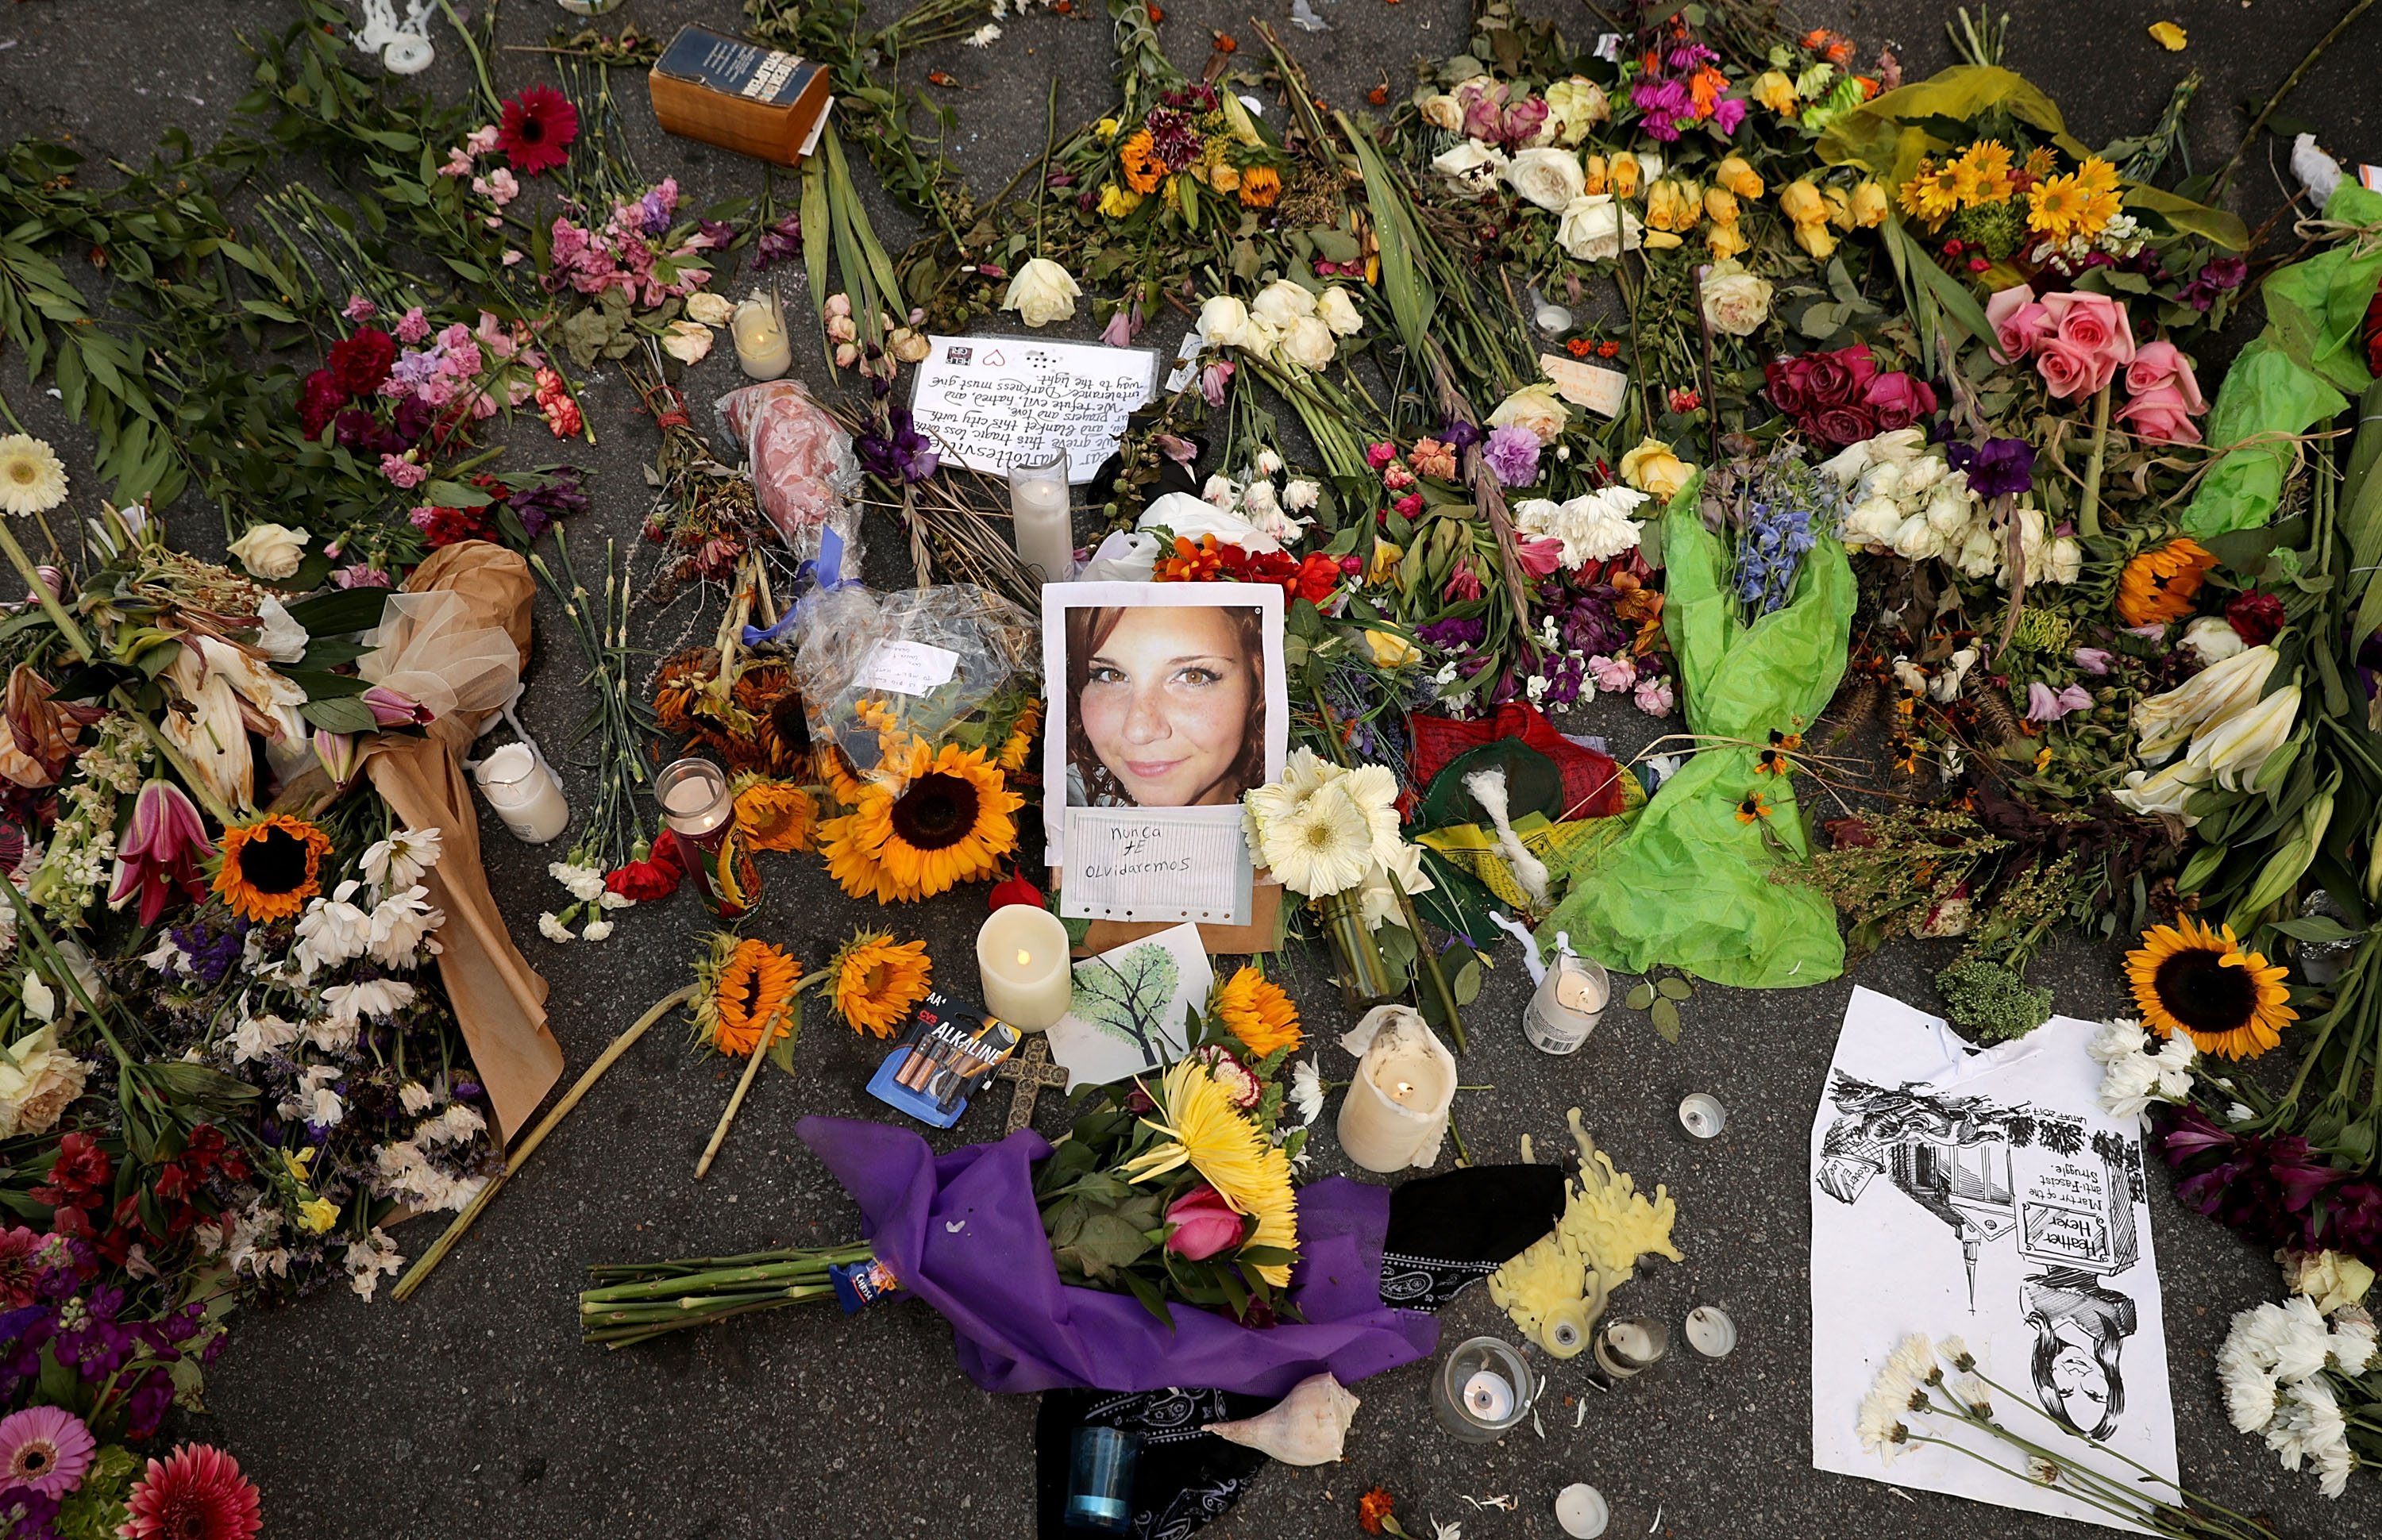 Flowers, candles and chalk-written messages surround a photograph of Heather Heyer on the spot where she was killed and 19 others injured when a car slamed into a crowd of people protesting against a white supremacist rally, August 16, 2017 in Charlottesville, Virginia. (Photo by Chip Somodevilla/Getty Images)